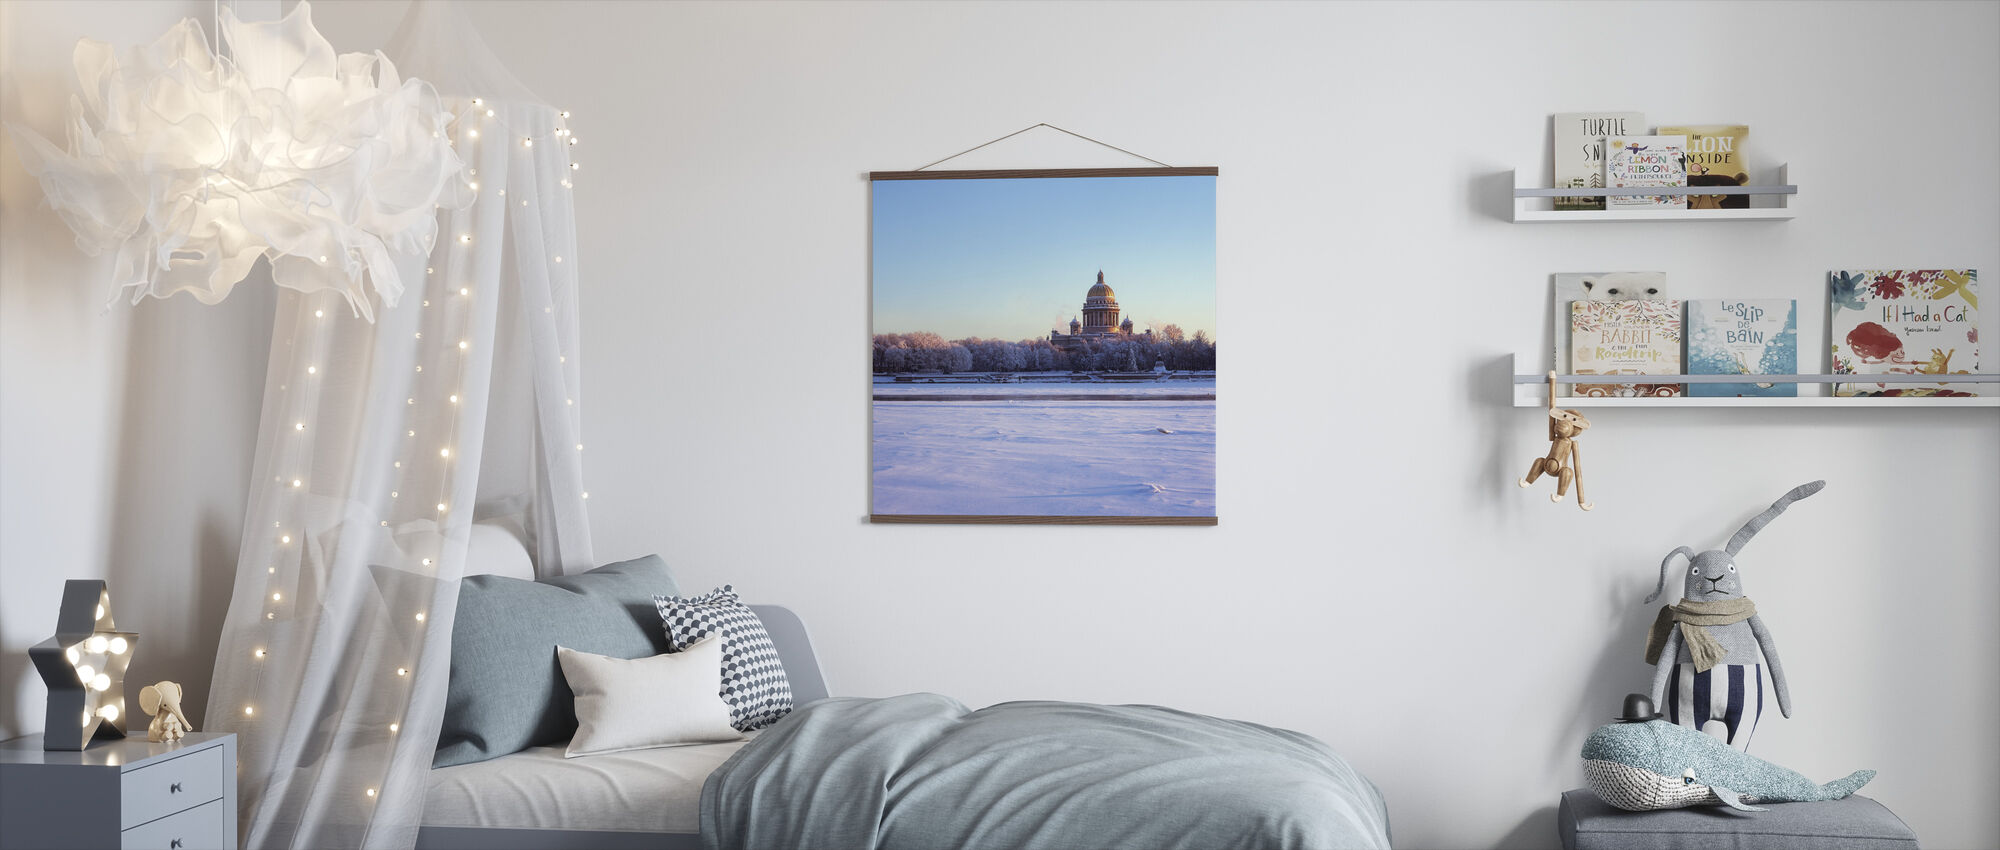 Frozen River Neva - Poster - Kids Room